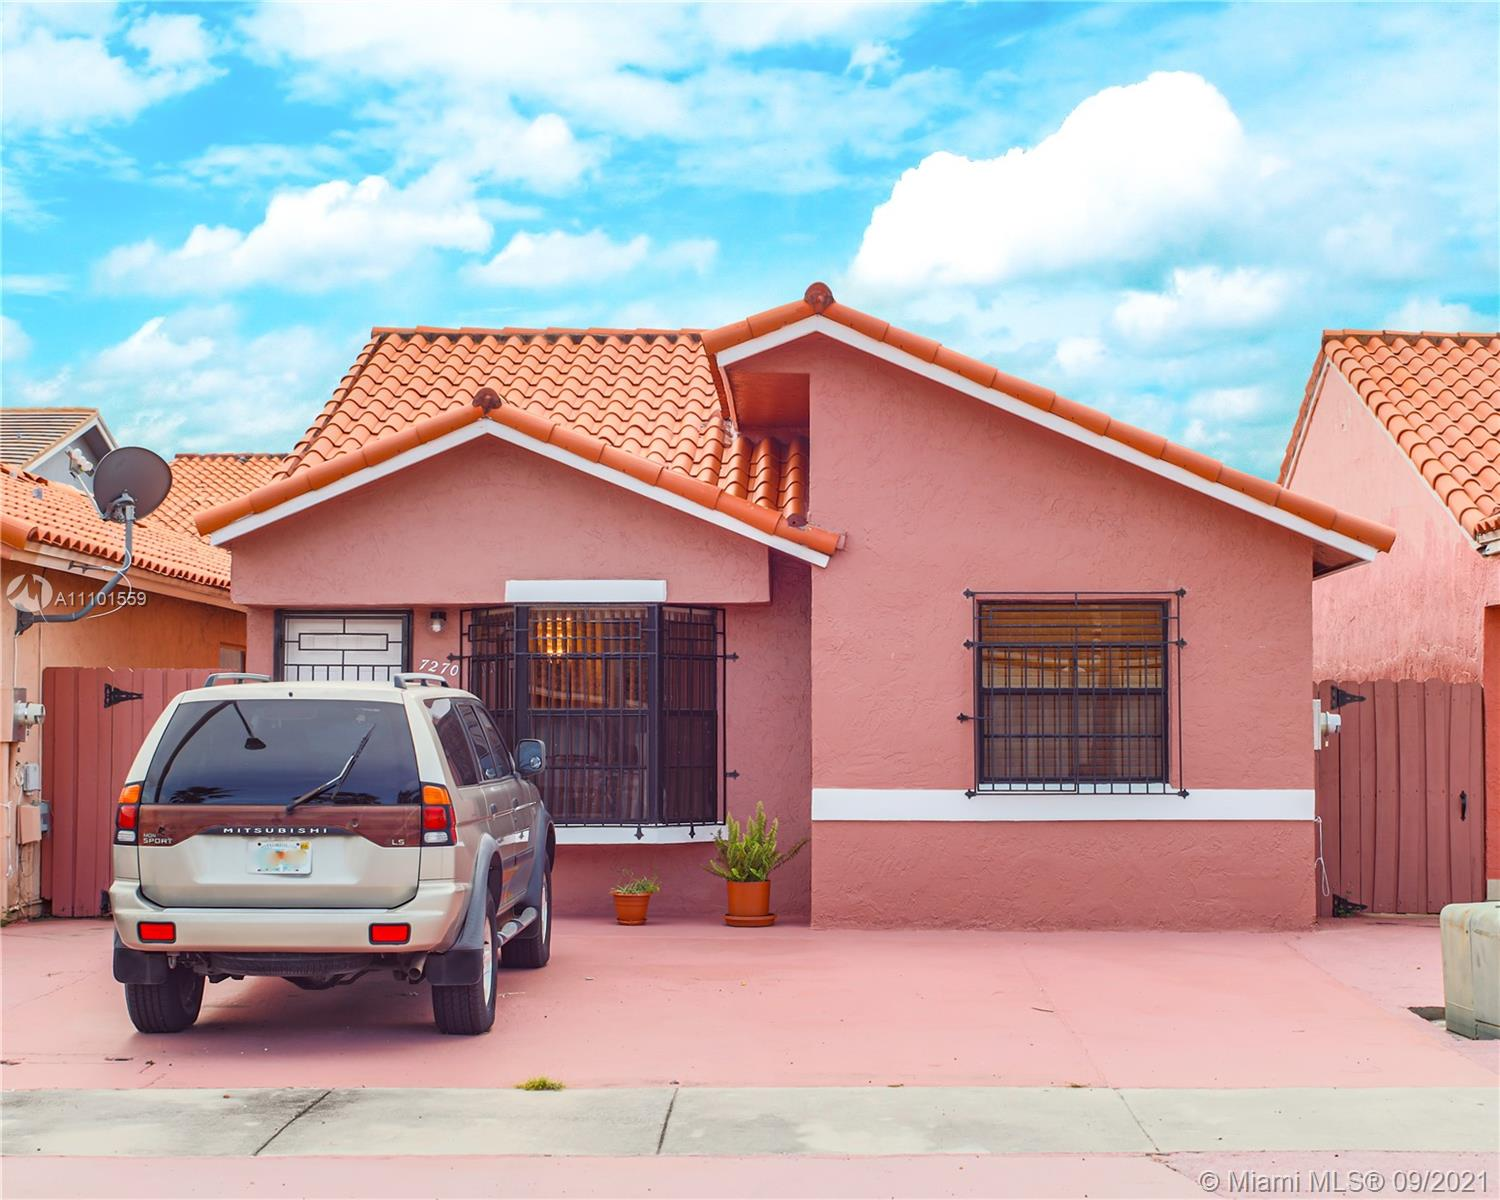 Single Family Home,For Sale,7270 W 29th Ave, Hialeah, Florida 33018,Brickell,realty,broker,condos near me